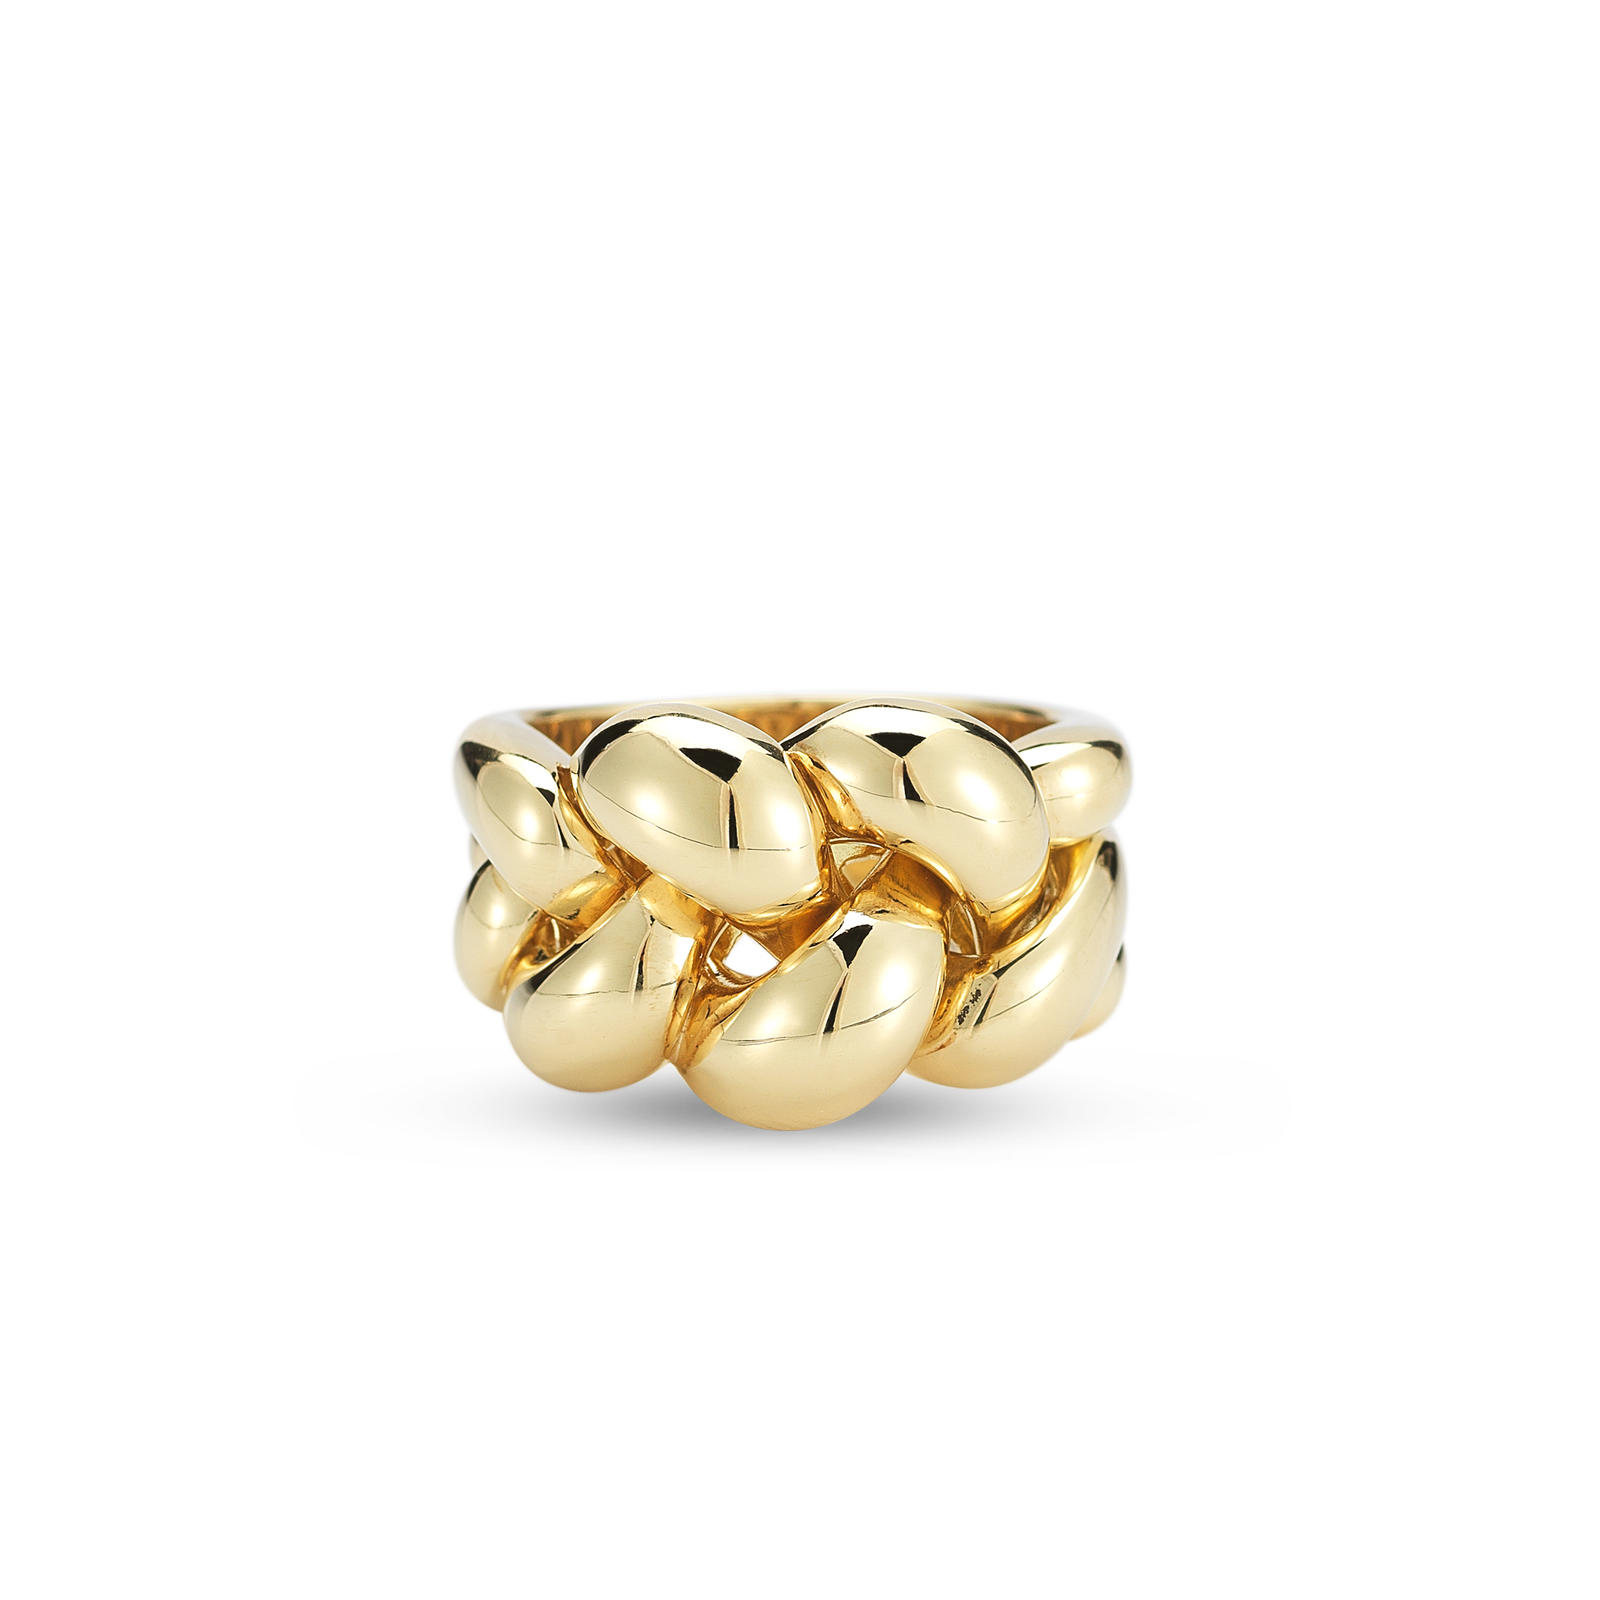 Roberto-Coin-Designer-Gold-18K-Yellow-Gold-Knot-Ring